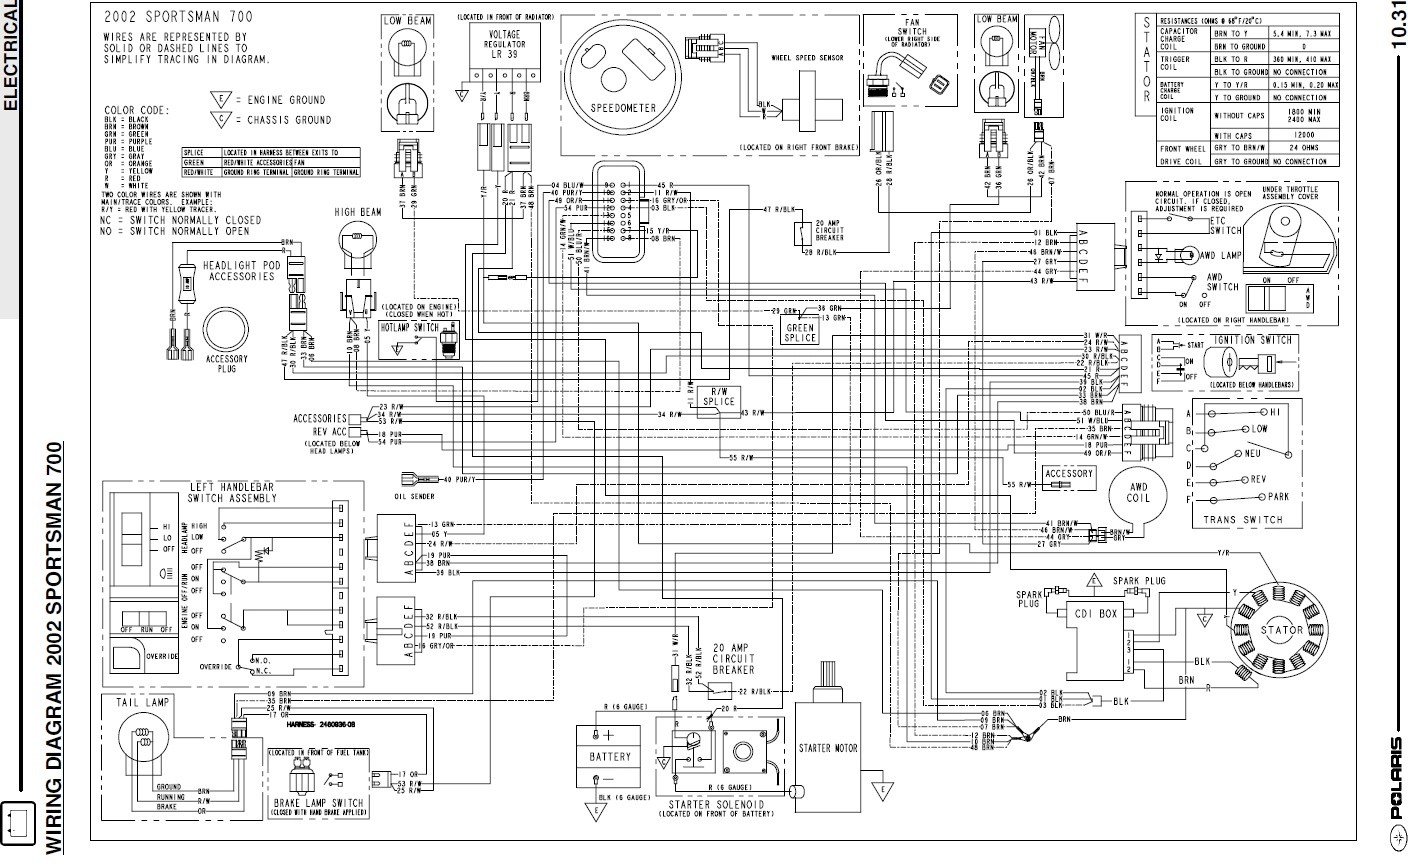 2010 Polaris Ev Wiring Diagram Diagram Base Website Wiring Diagram -  LABELEDHEARTDIAGRAM.TARNON-MIMENTE.FRDiagram Base Website Full Edition